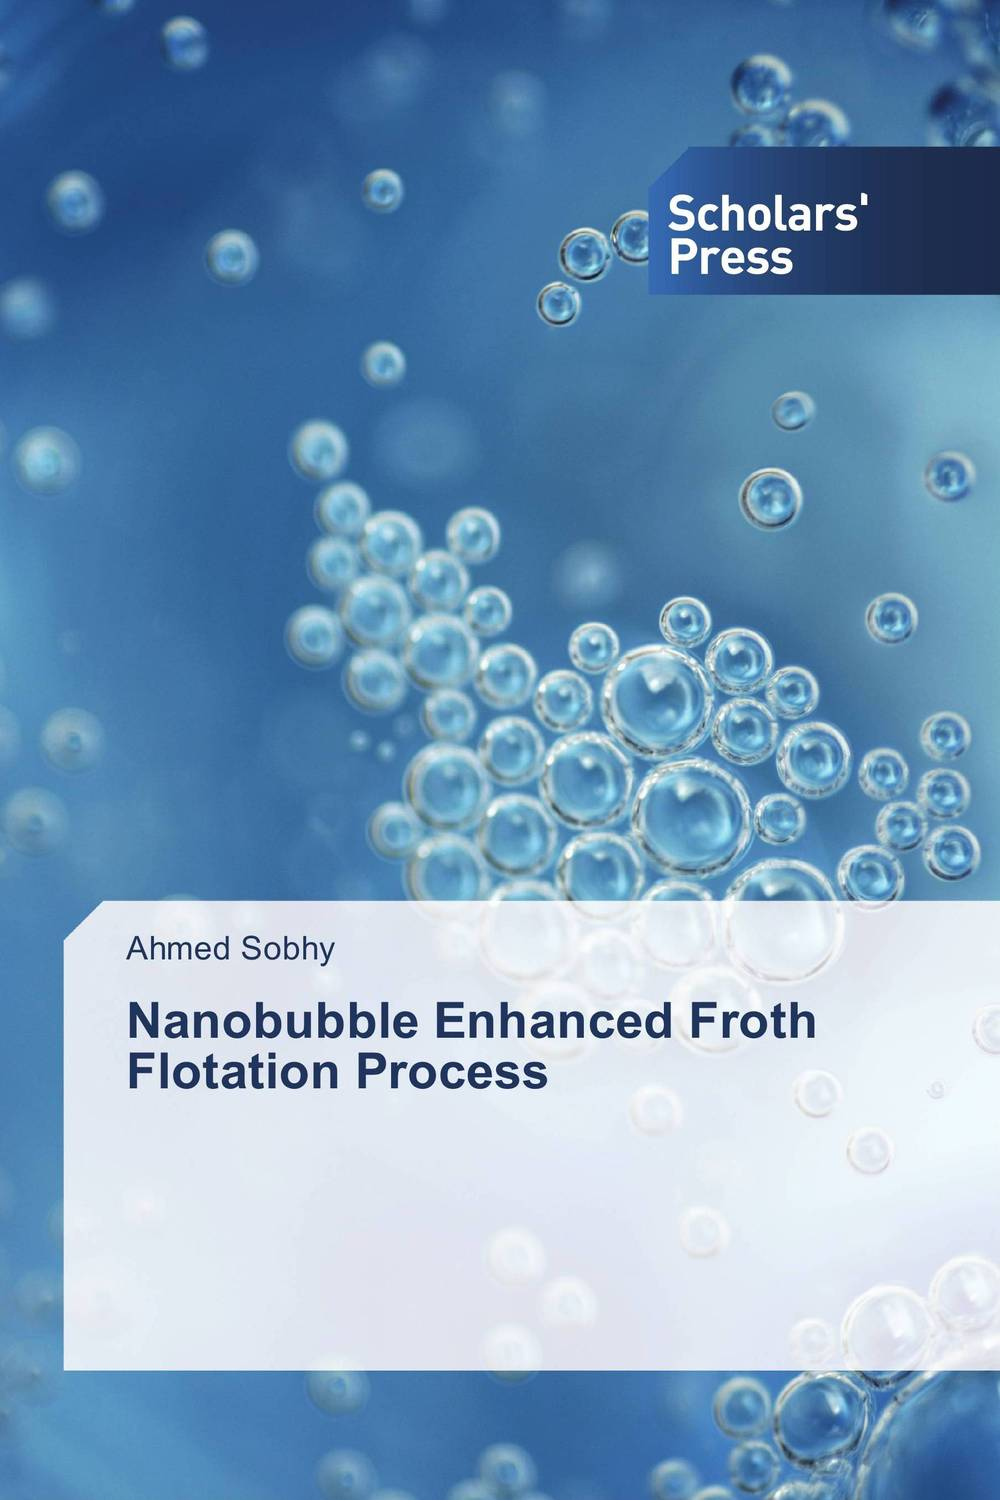 Nanobubble Enhanced Froth Flotation Process